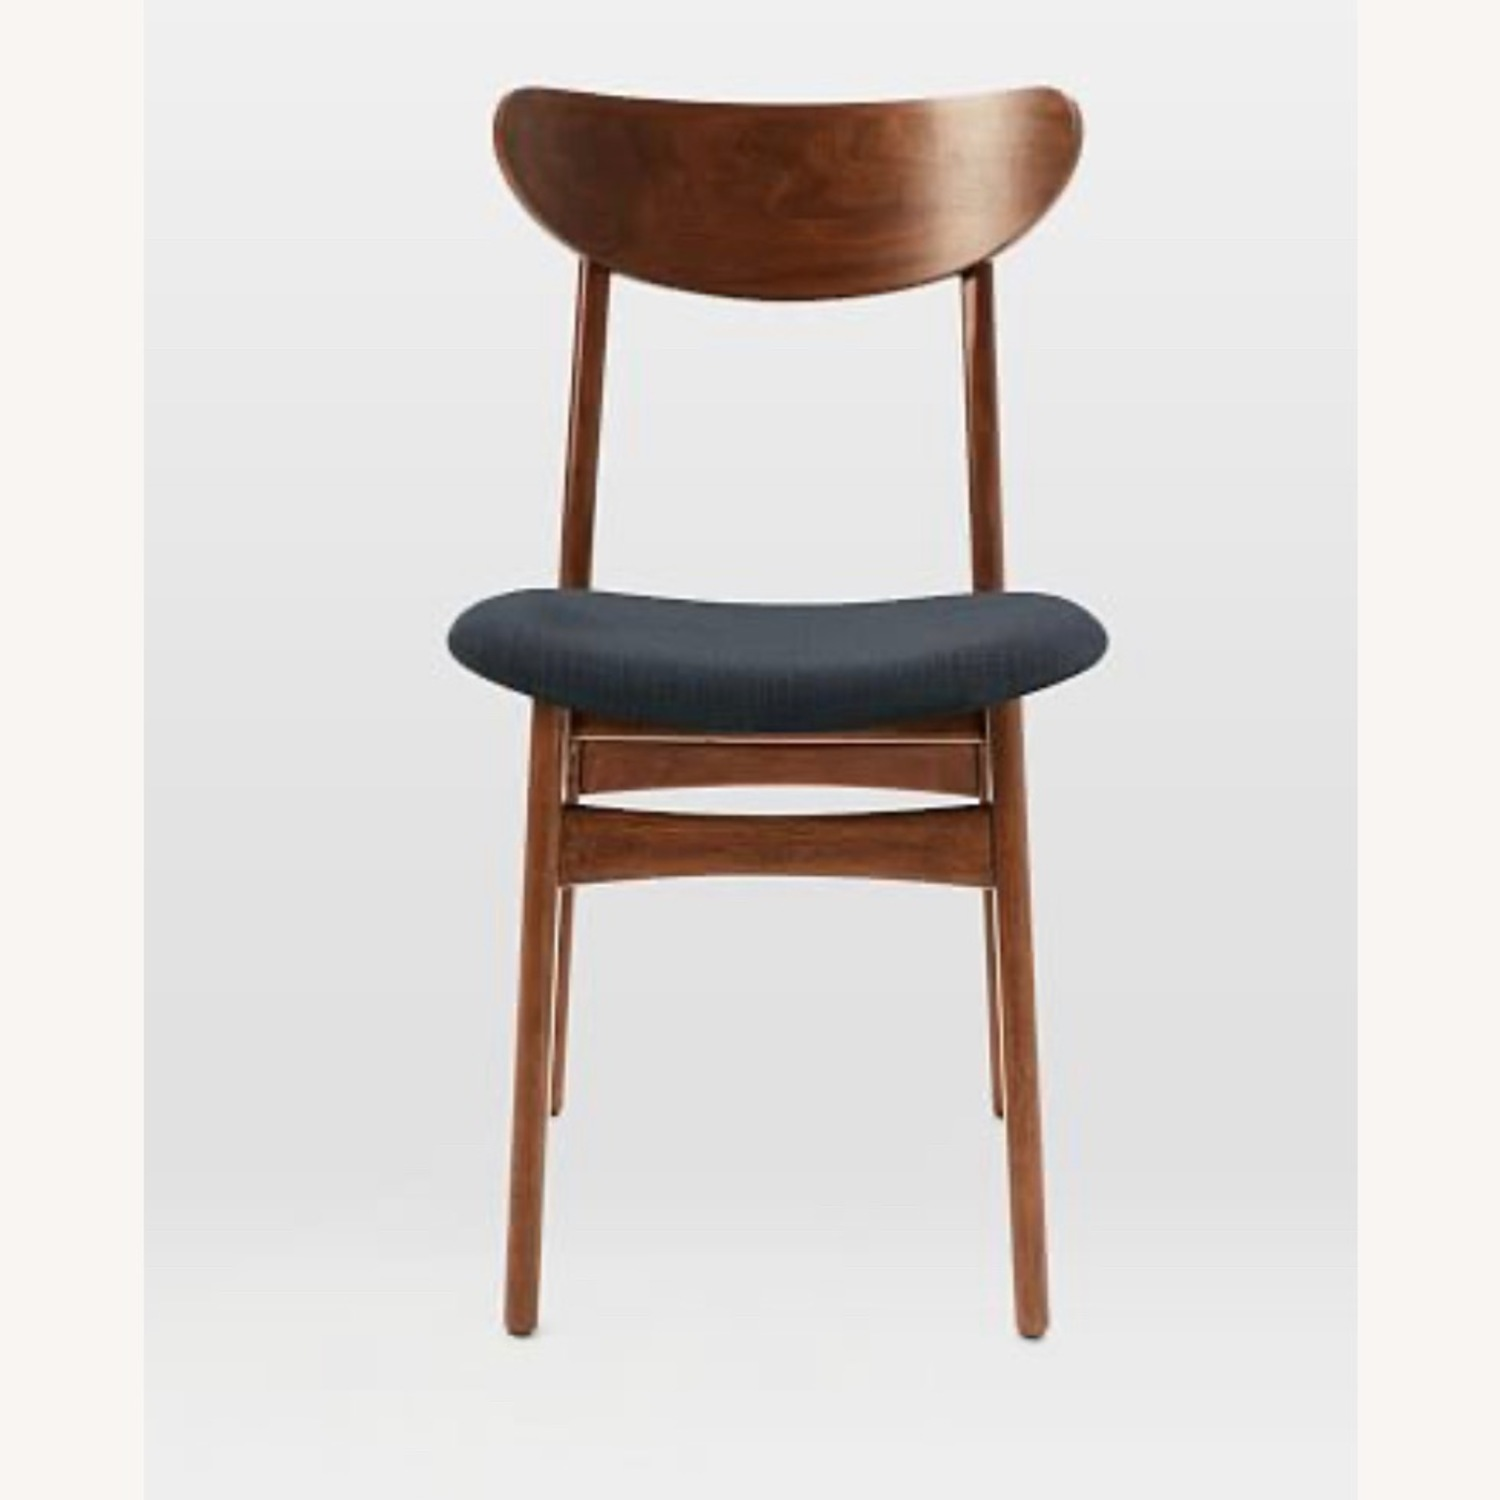 West Elm Classic Cafe Chairs Set of 2 - image-3